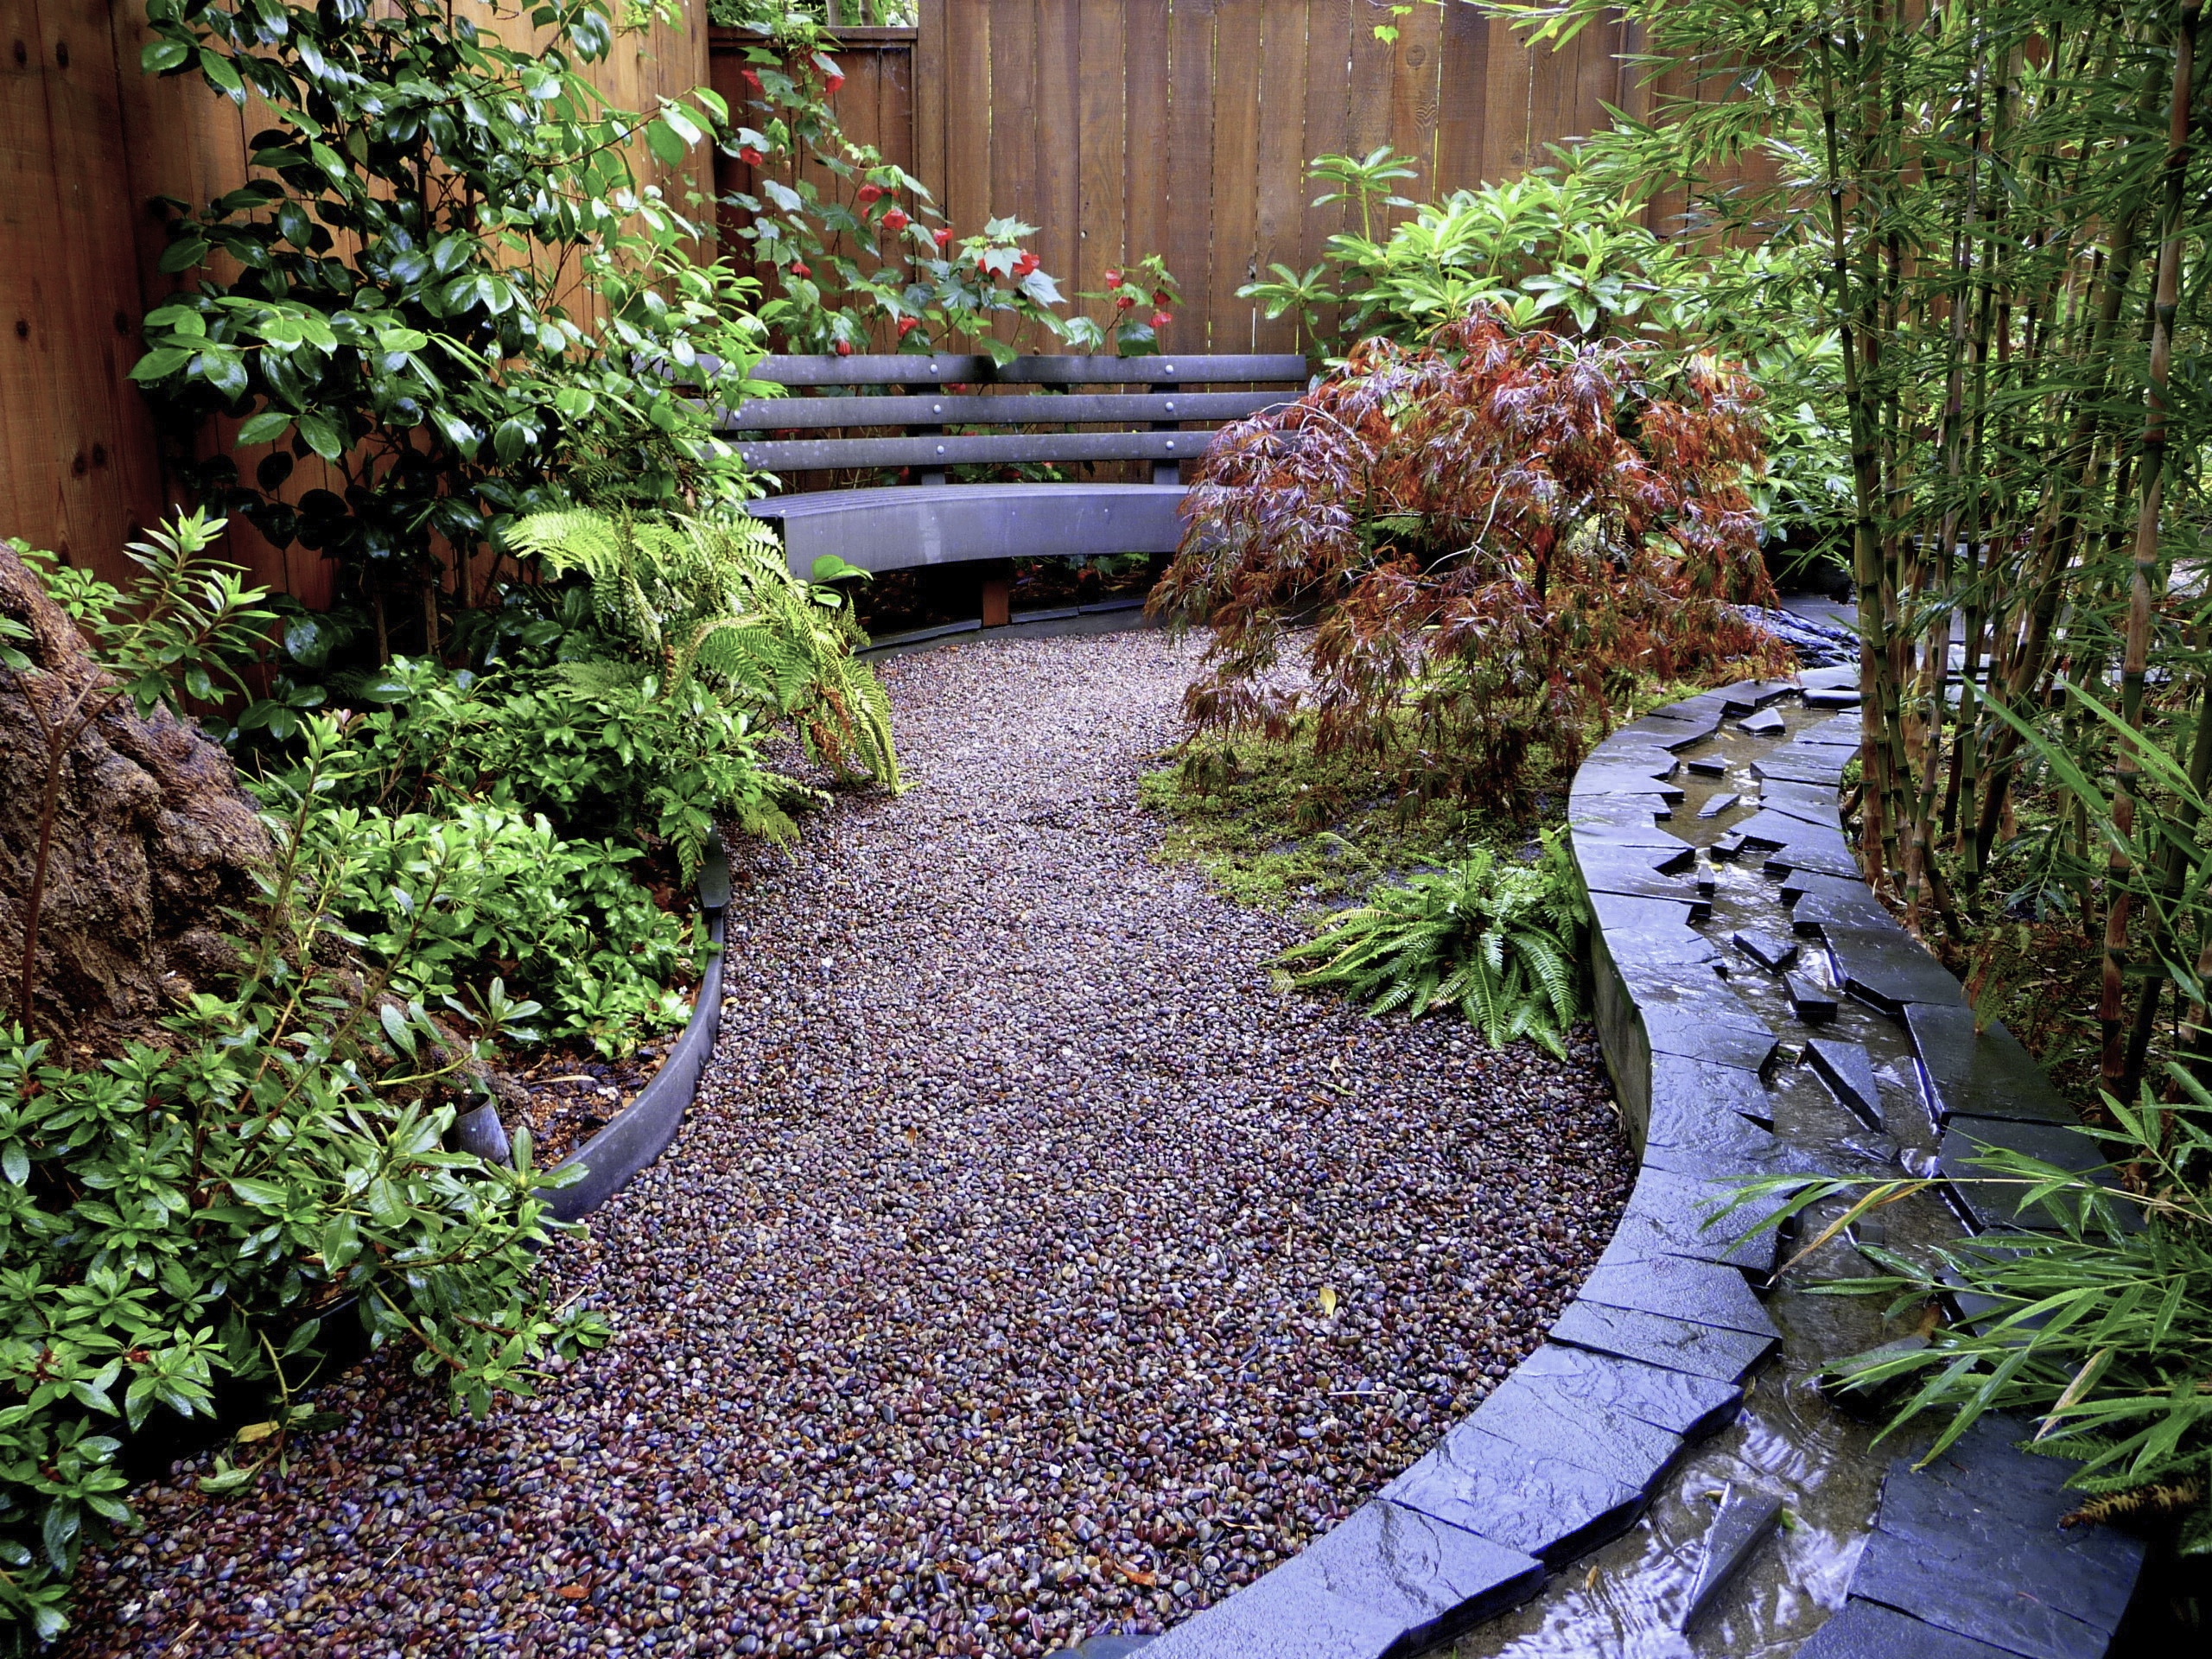 Sculpt gardens design build sensory garden for Sensory garden designs